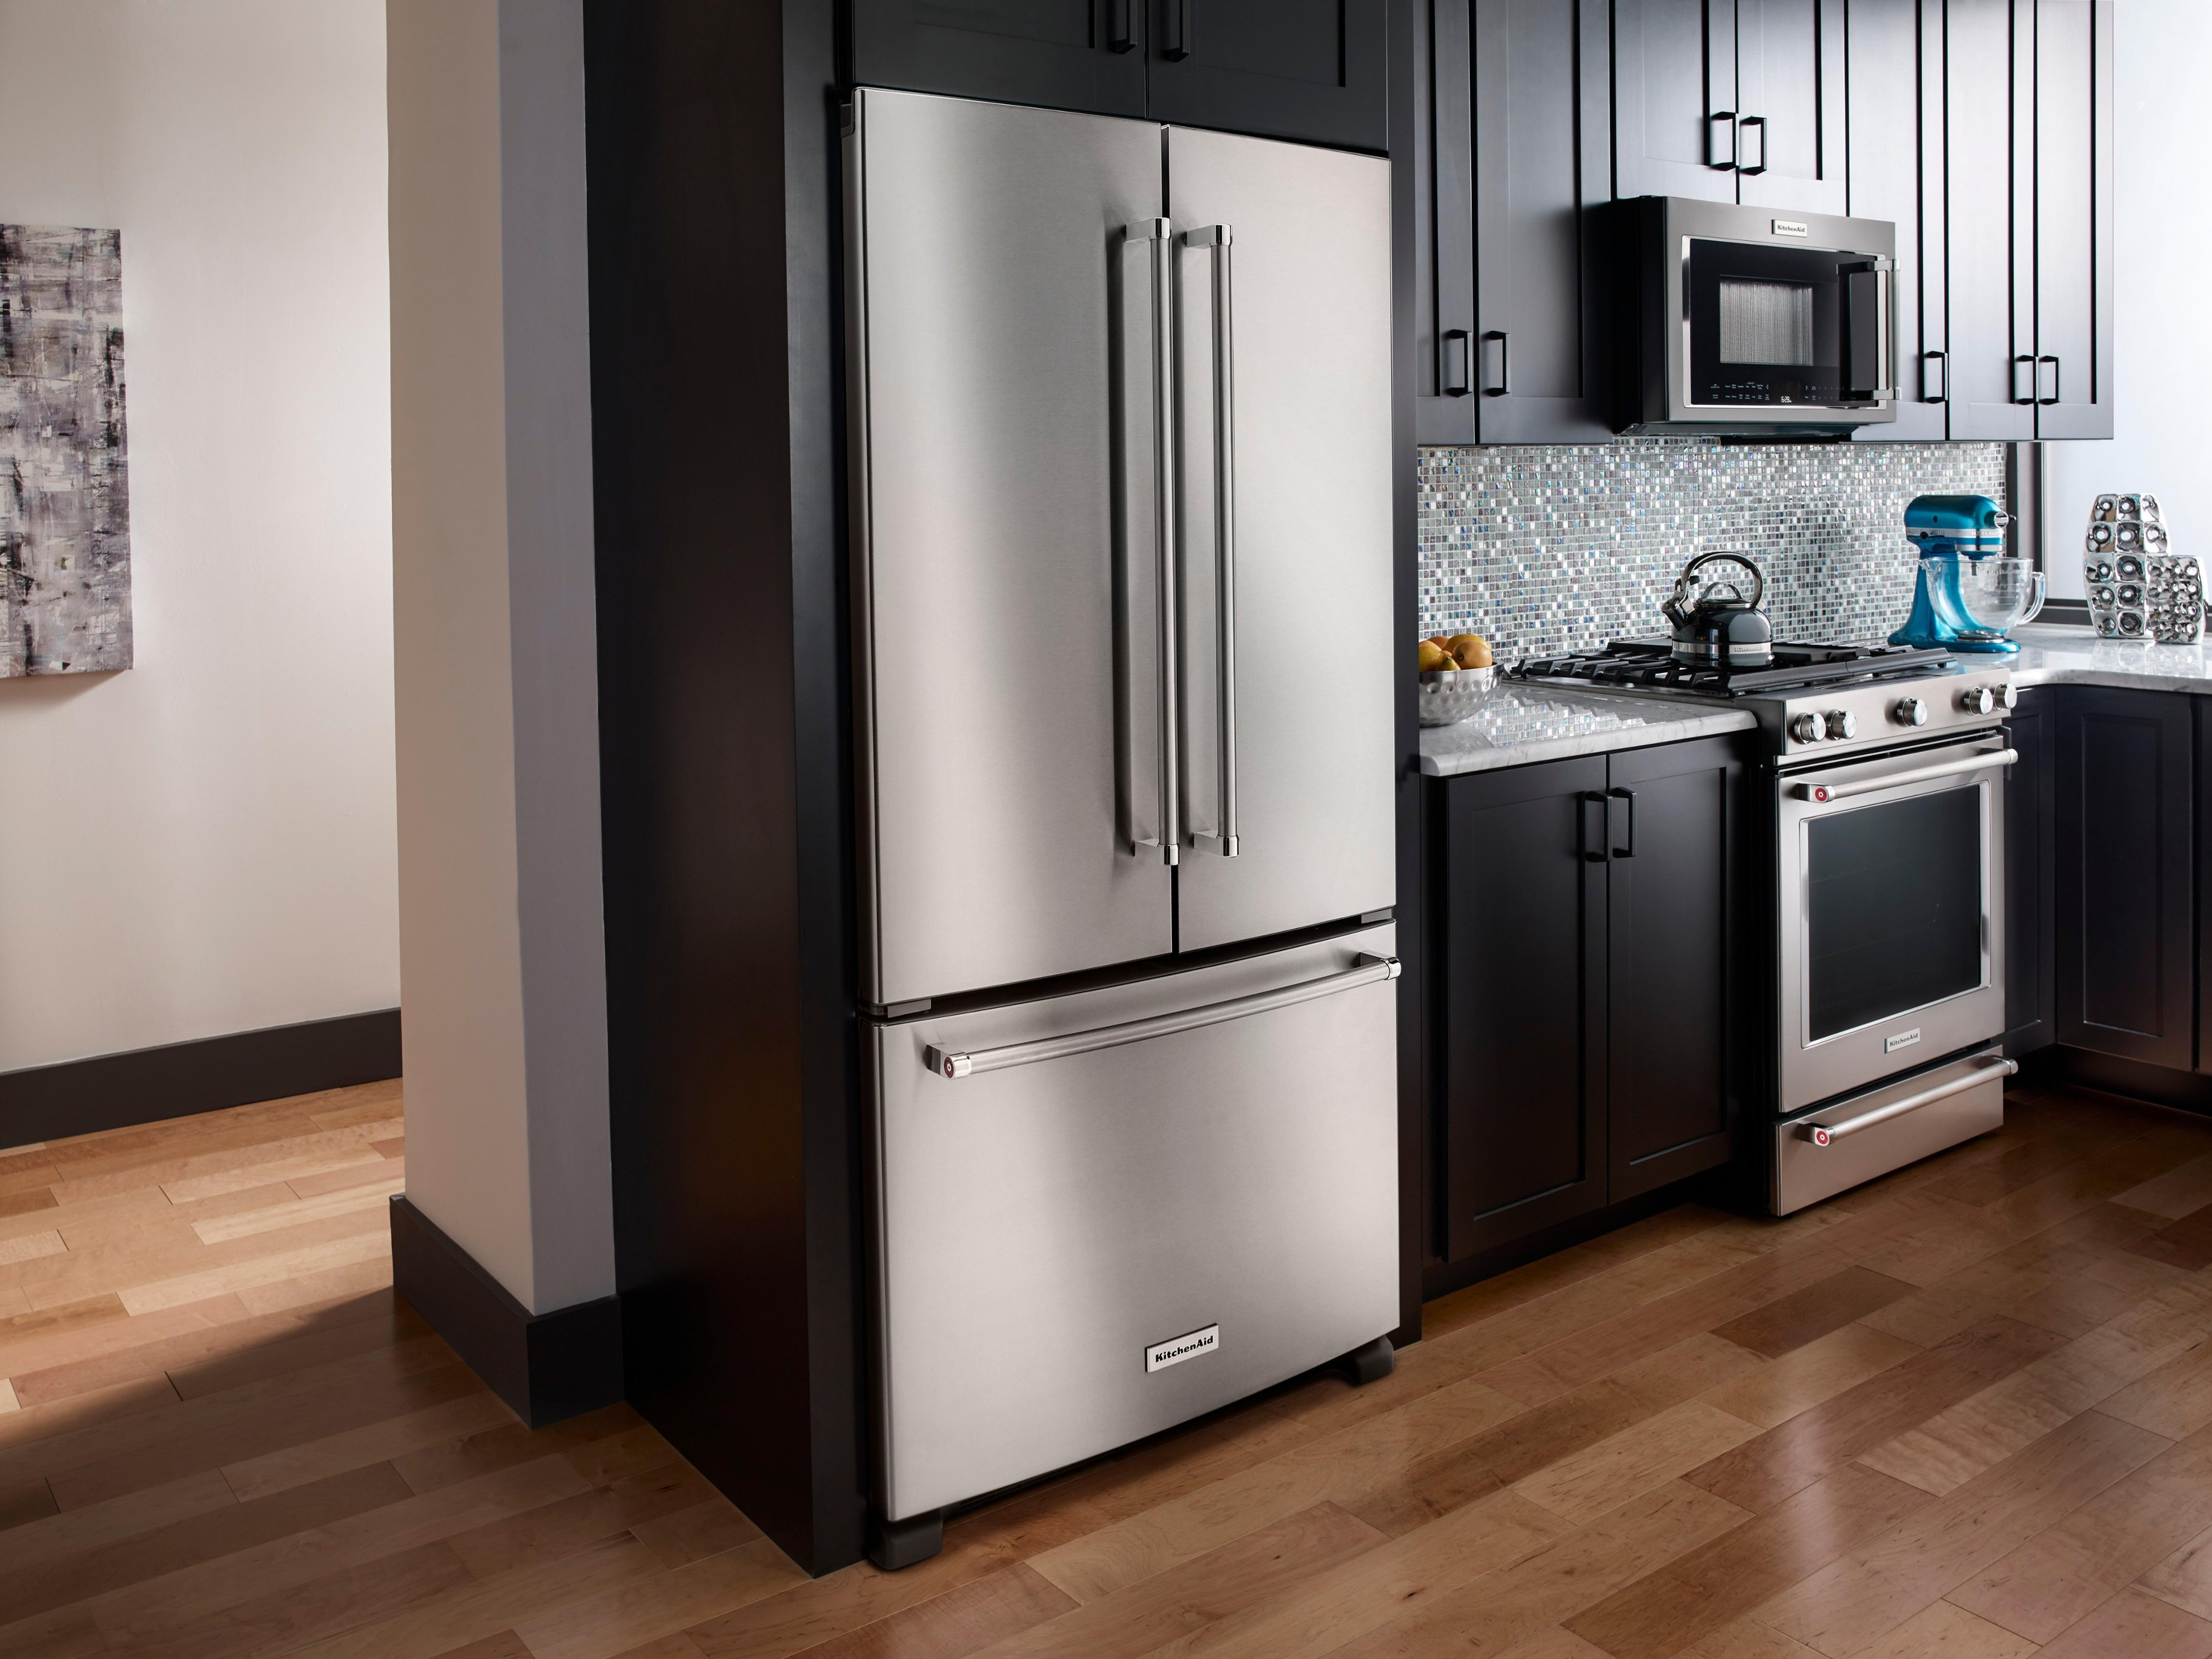 Kitchenaid Krfc300ess Kitchenaid 21 9 Cu Ft French Door Counter Depth Refrigerator Stainless Steel